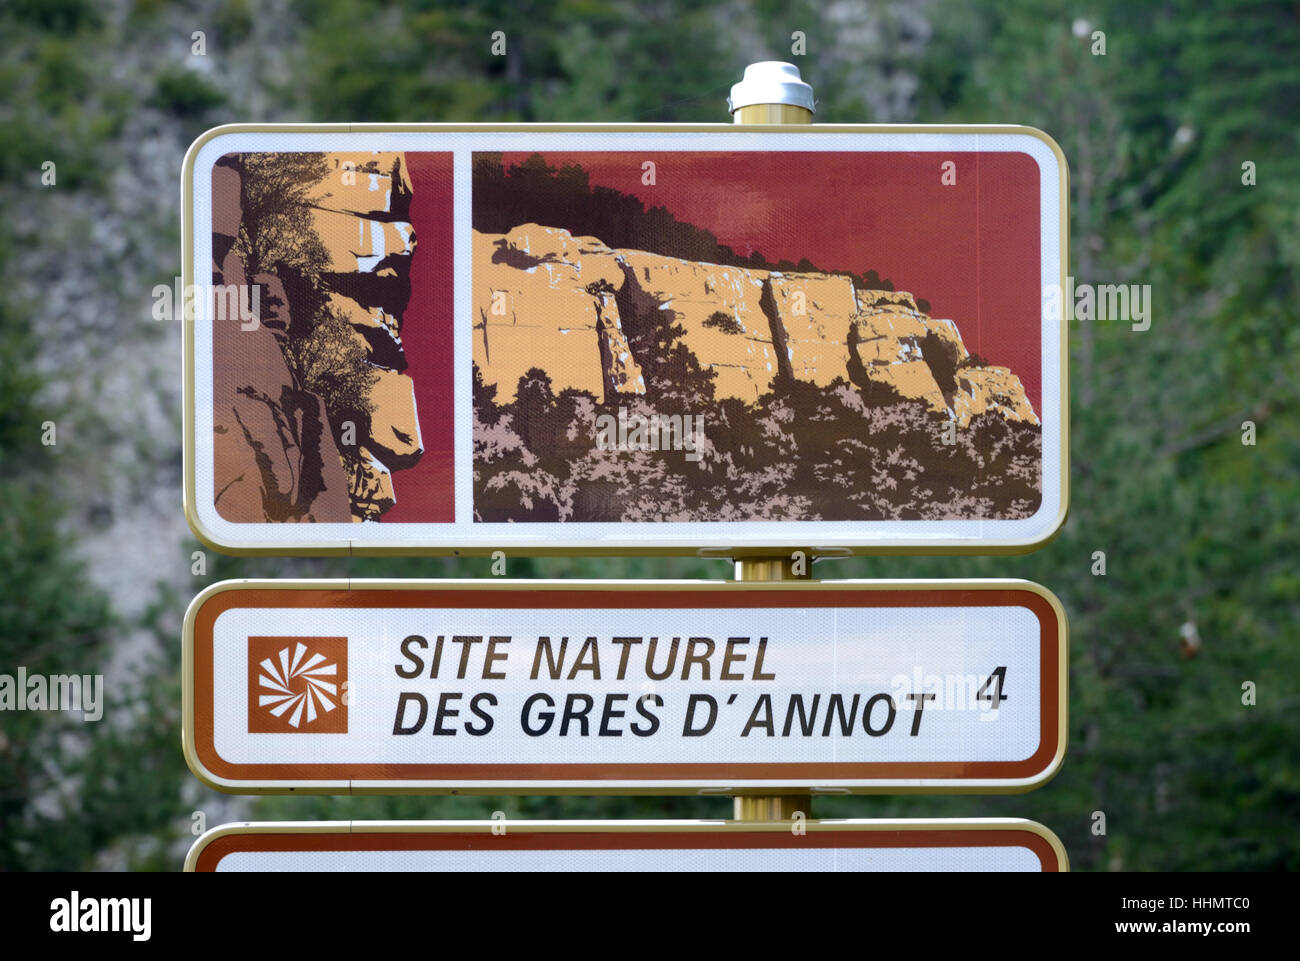 Road Sign Advertising the Sandstone Outcrops or Grès Rock Formations at Annot Alpes-de-Haute-Provence Provence - Stock Image